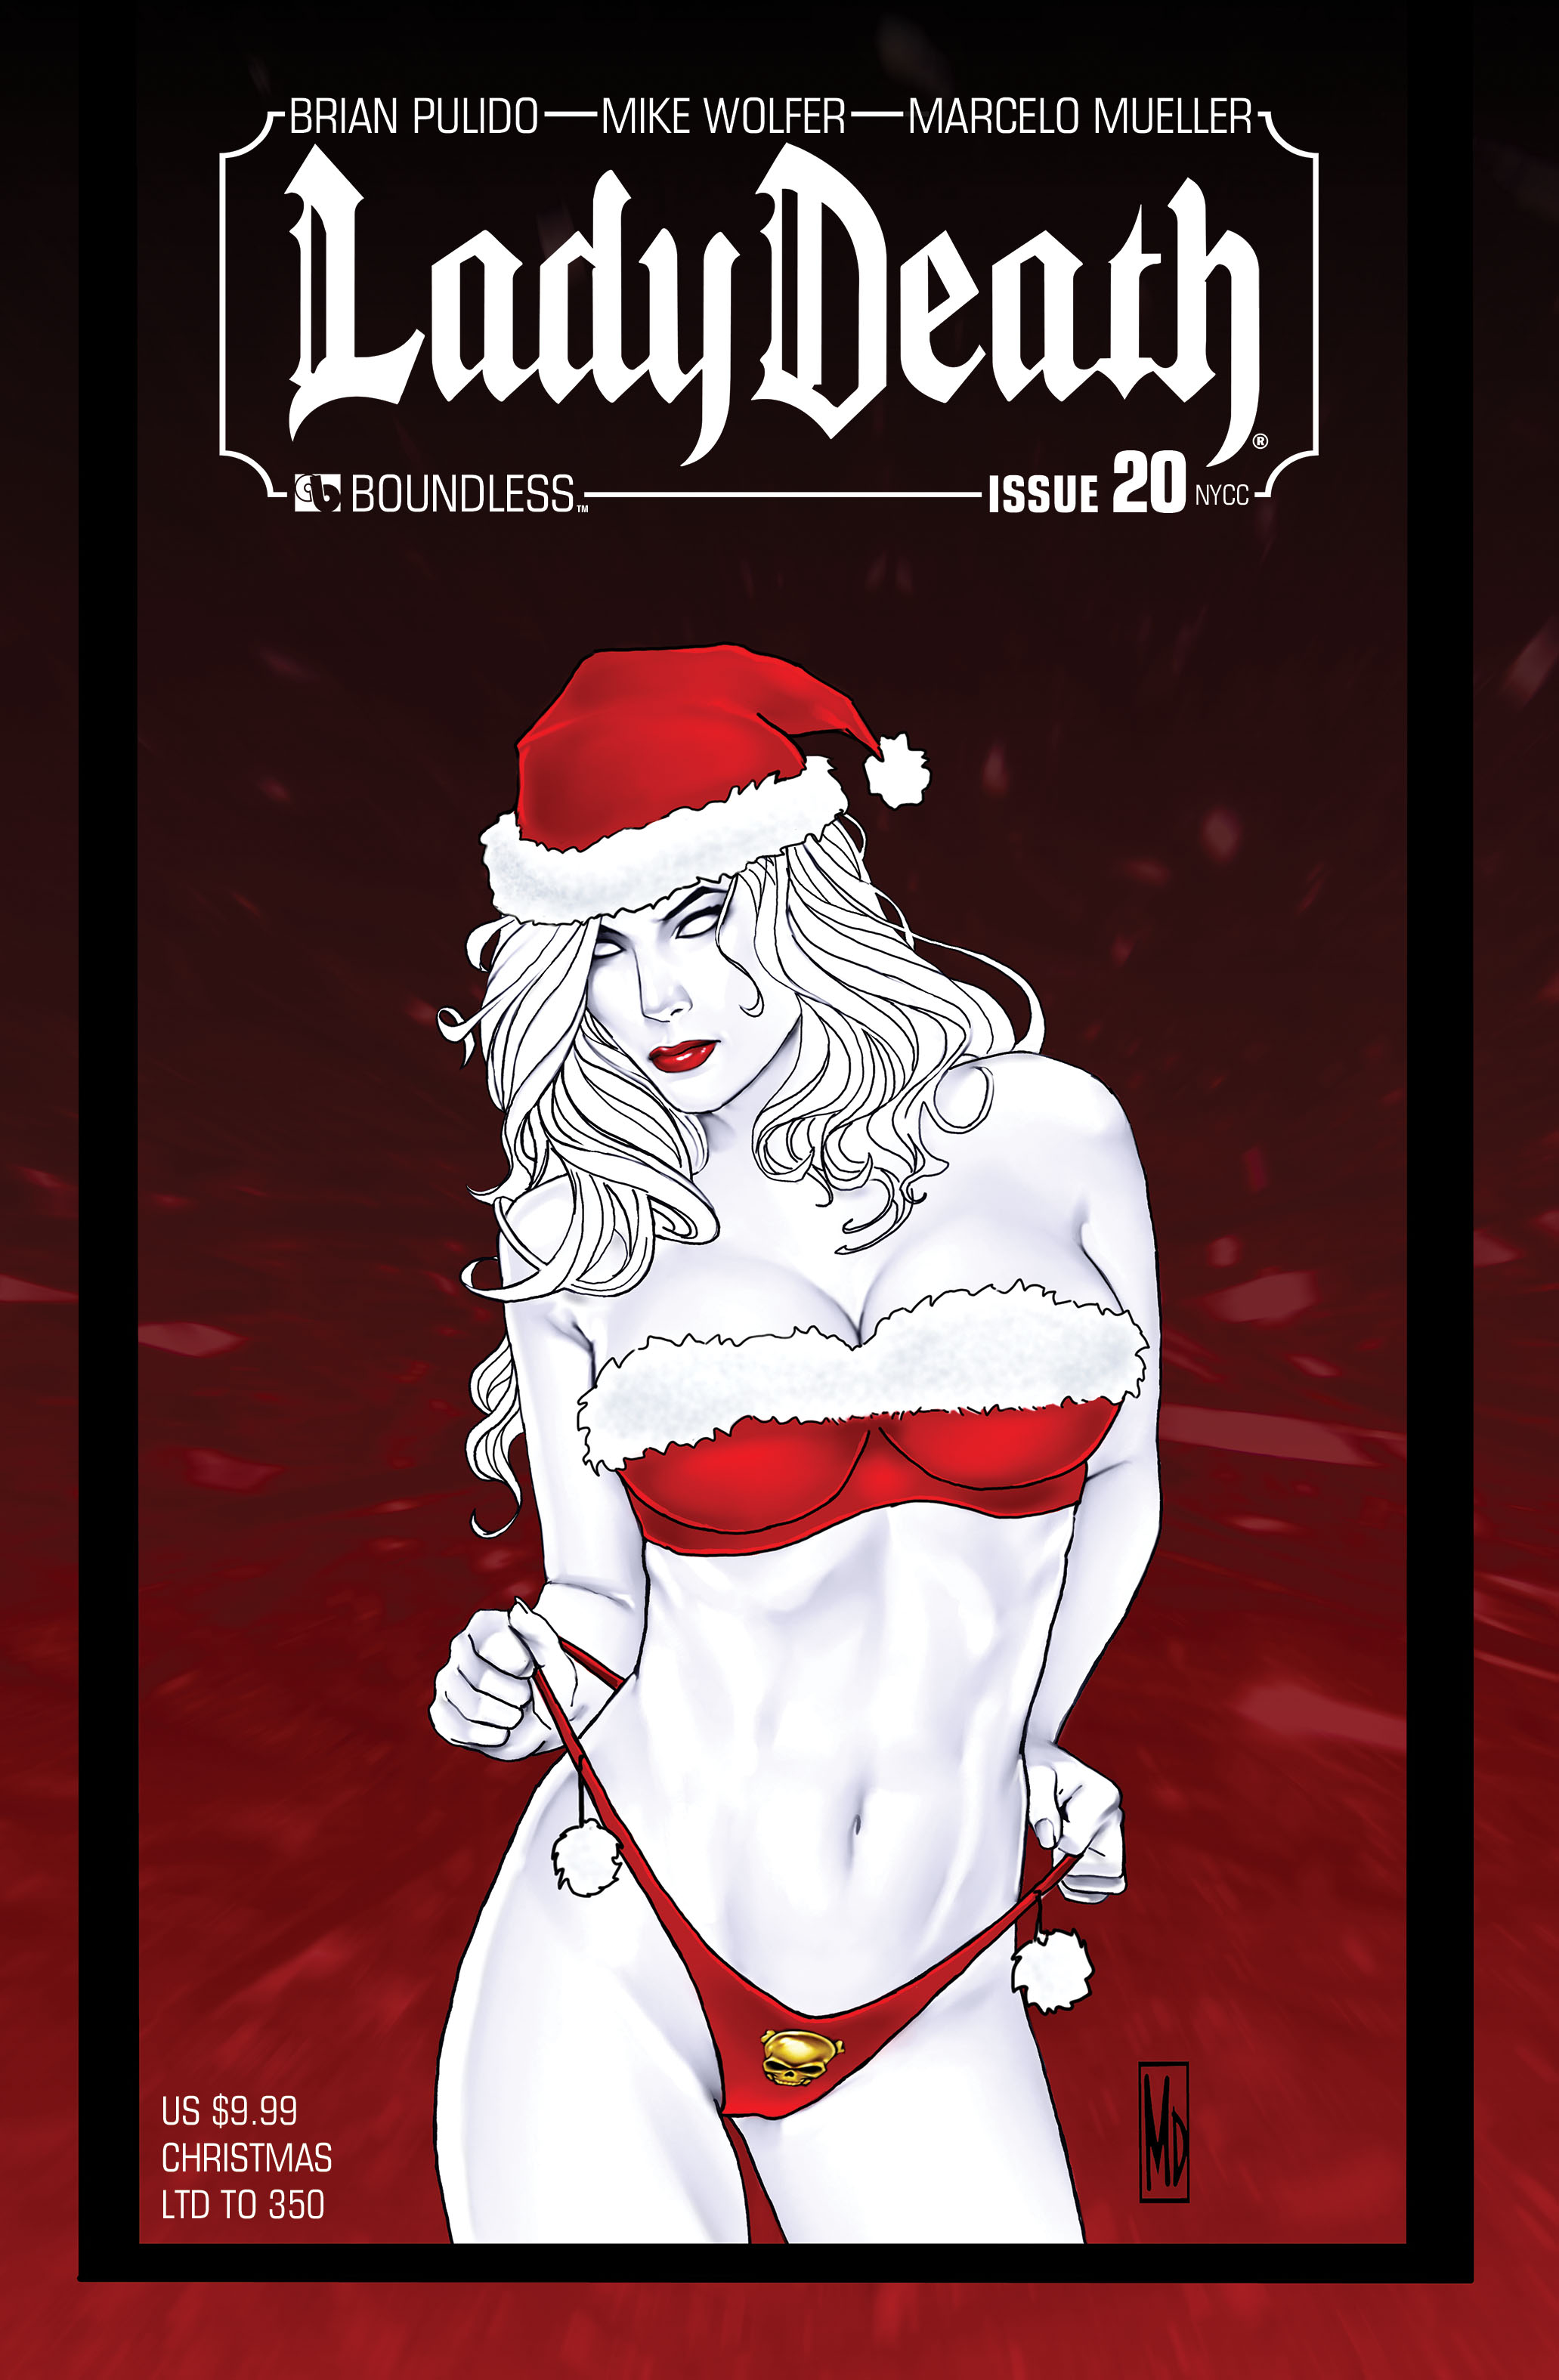 LADY DEATH (ONGOING) #20 NY CHRISTMAS (MR)